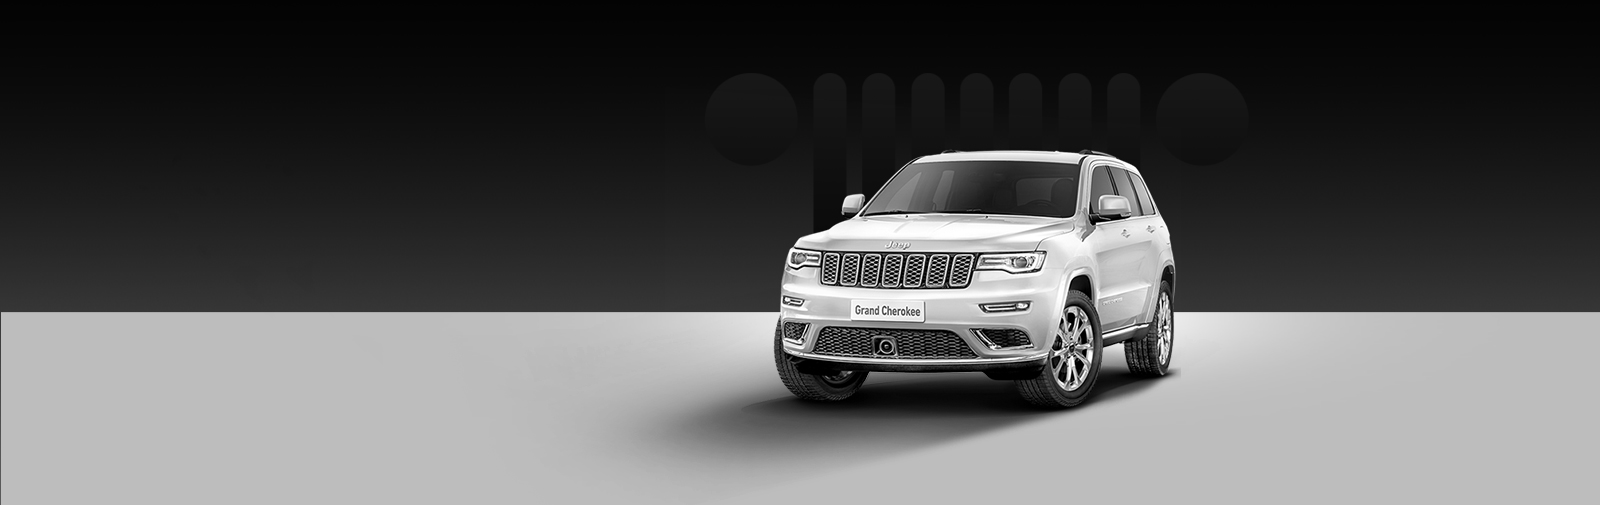 GRAND CHEROKEE LIMITED 2017